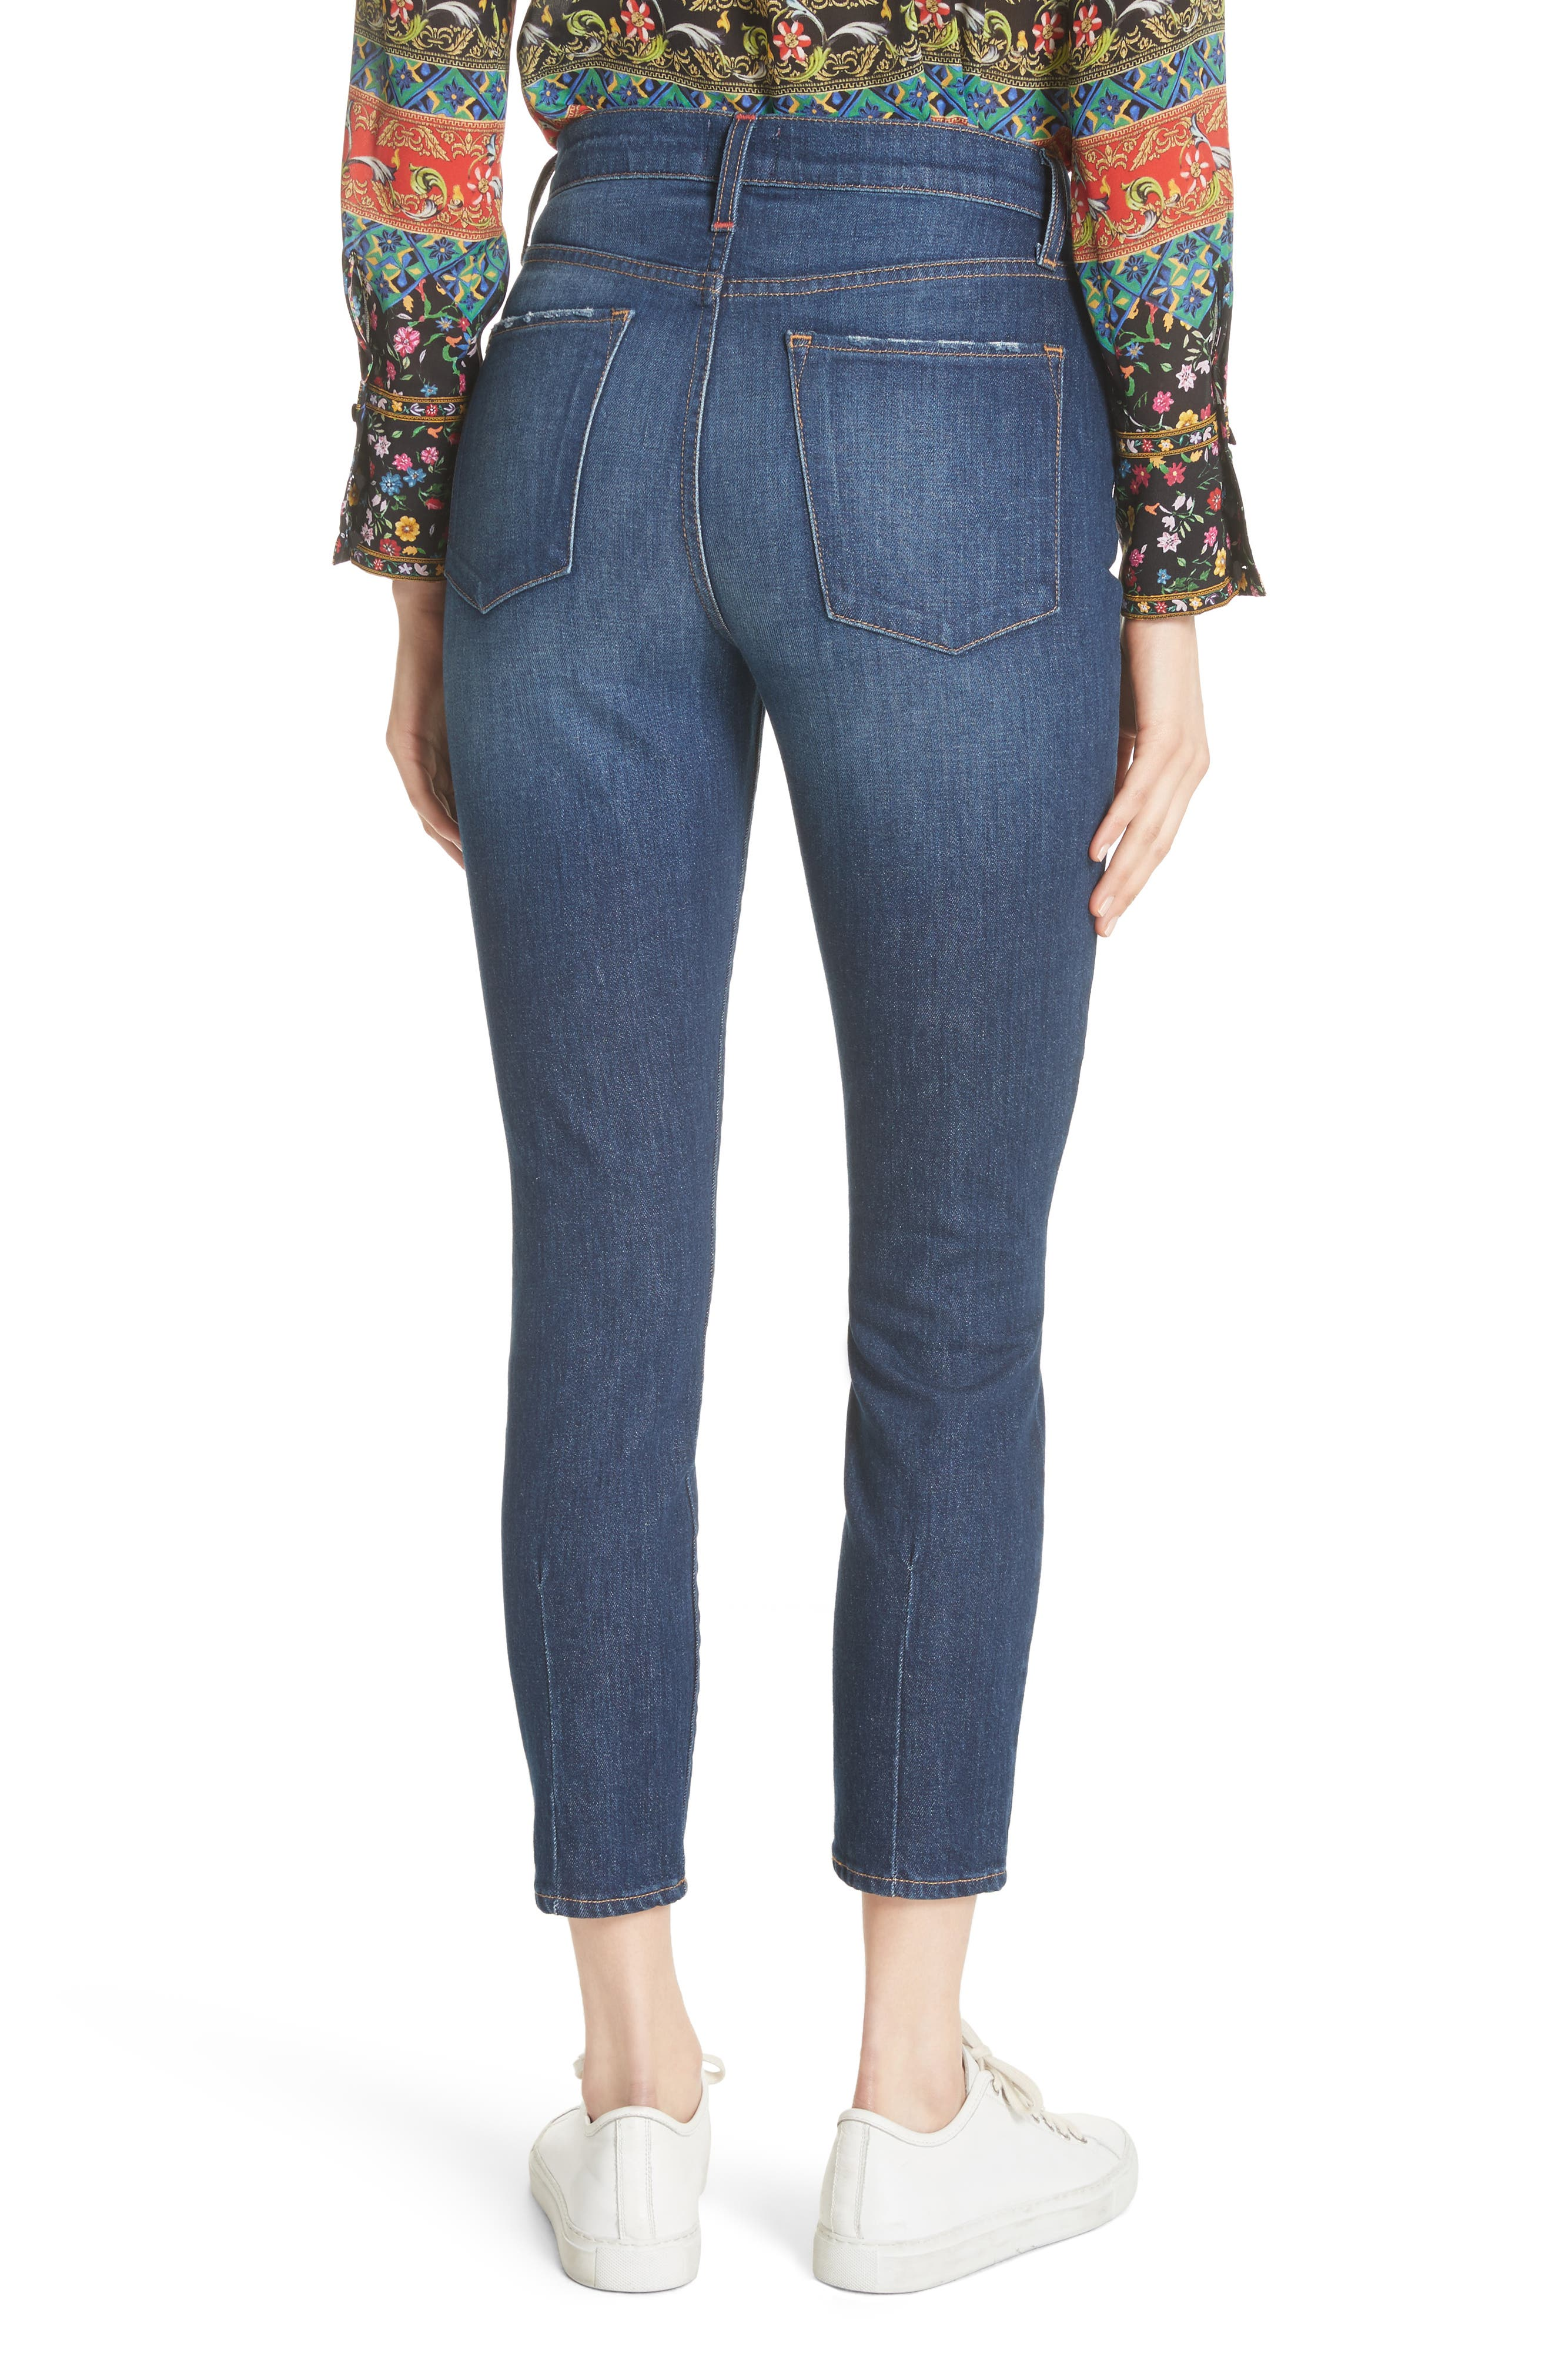 AO.LA Good High Waist Exposed Button Skinny Jeans,                             Alternate thumbnail 2, color,                             472